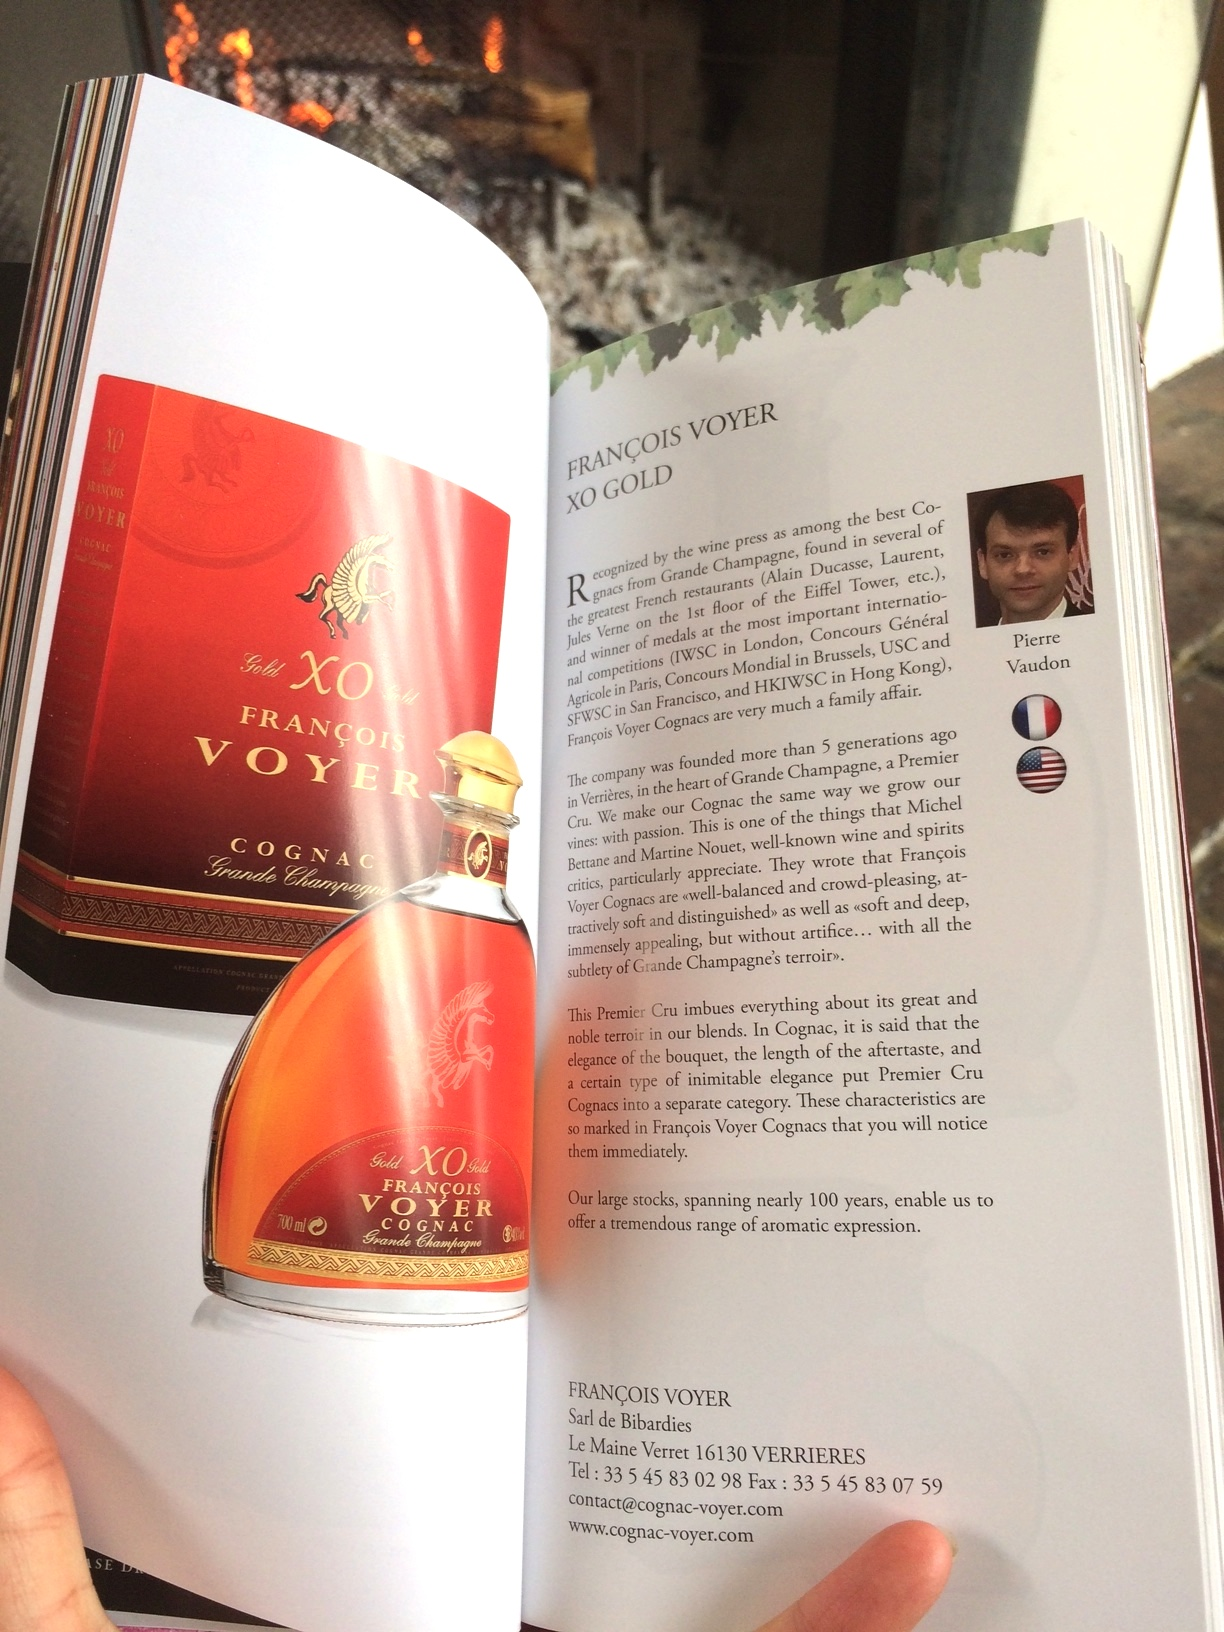 Cognac guide Voyer